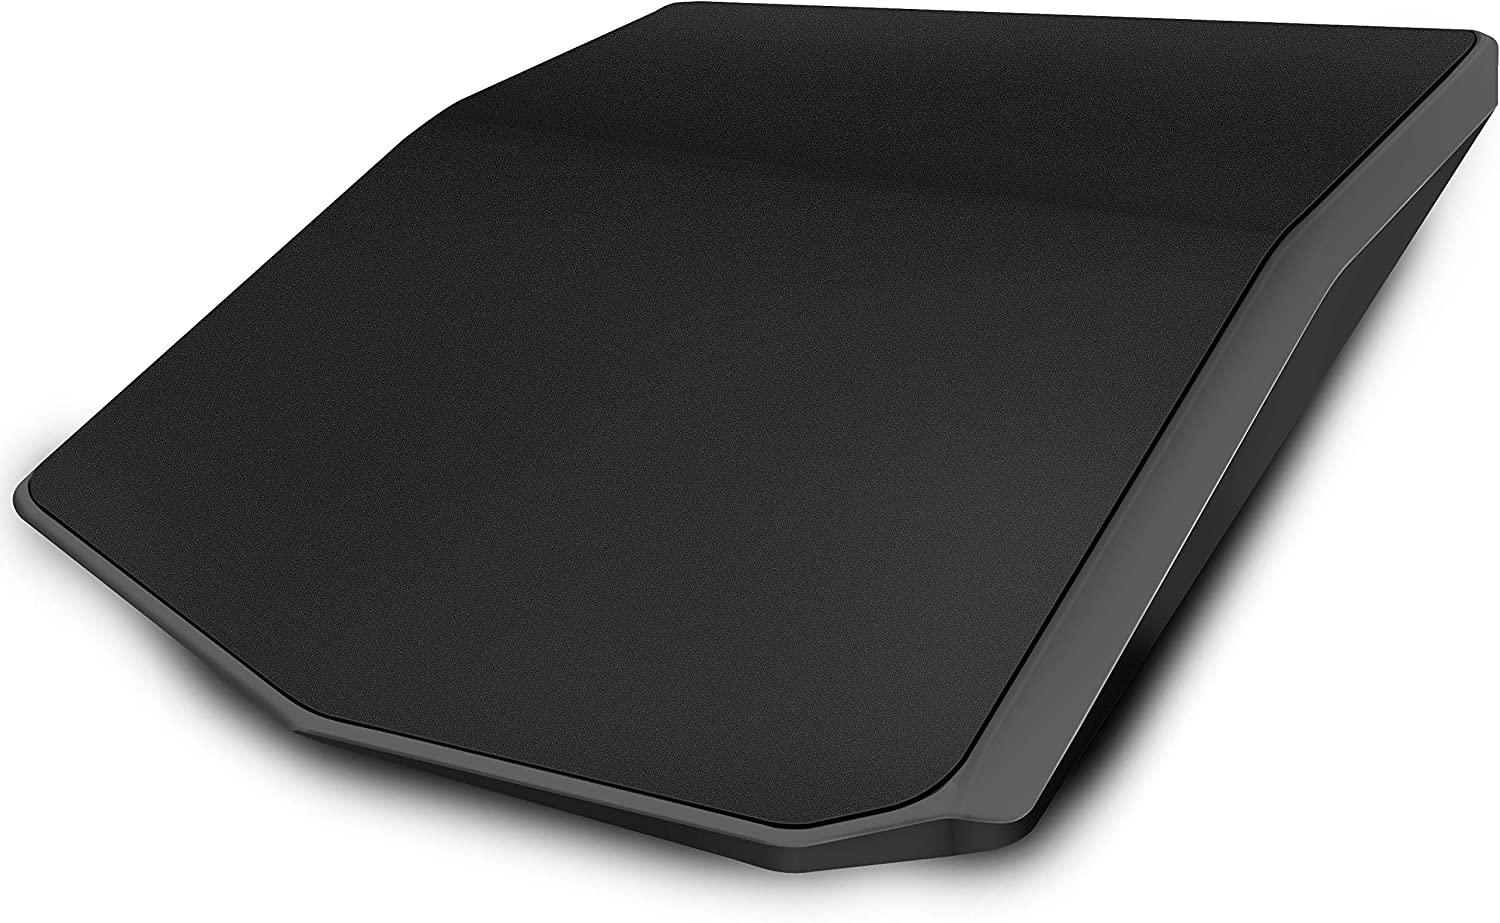 Soundance Ergonomic Mouse Pad with Wrist Support and Arm Rest, Large Mouse Pad with Three-Dimensional Nonslip Base Superfine Fiber Mat, Pain Relieve for Computer Laptop Office Home School Gaming